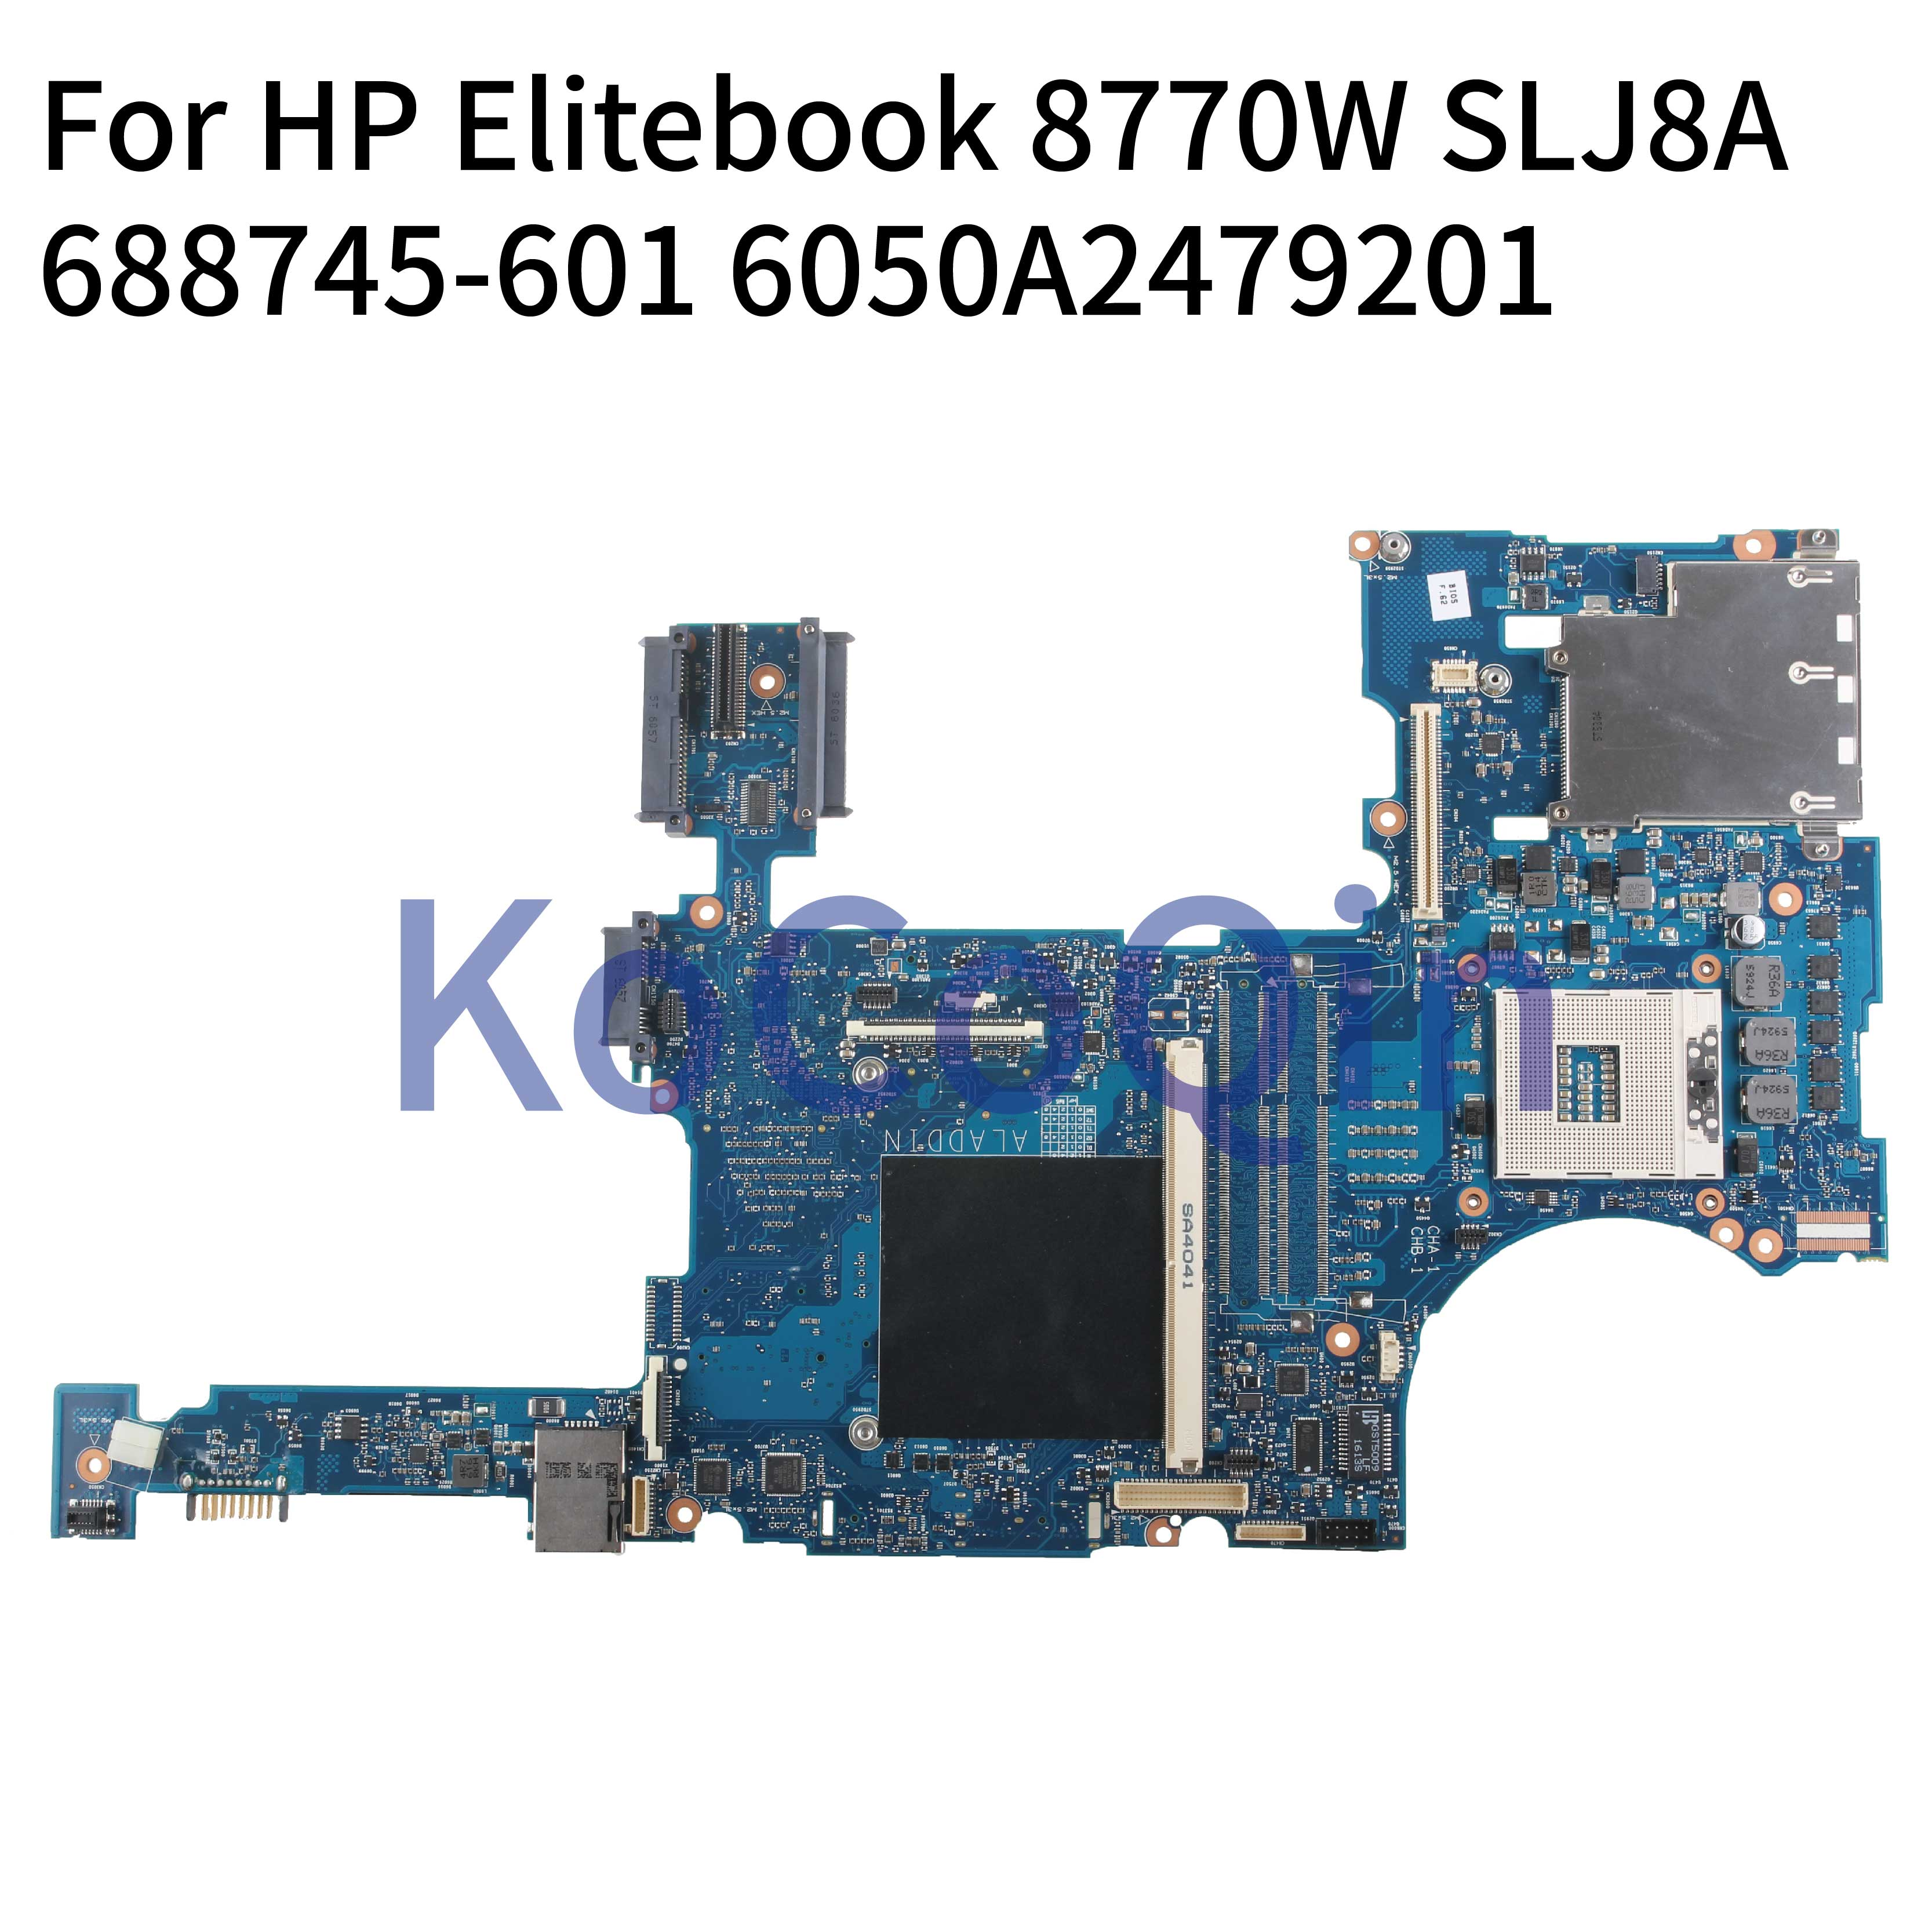 KoCoQin Laptop motherboard For HP Elitebook <font><b>8770W</b></font> Mainboard 688745-001 688745-601 6050A2479201 QM77 image